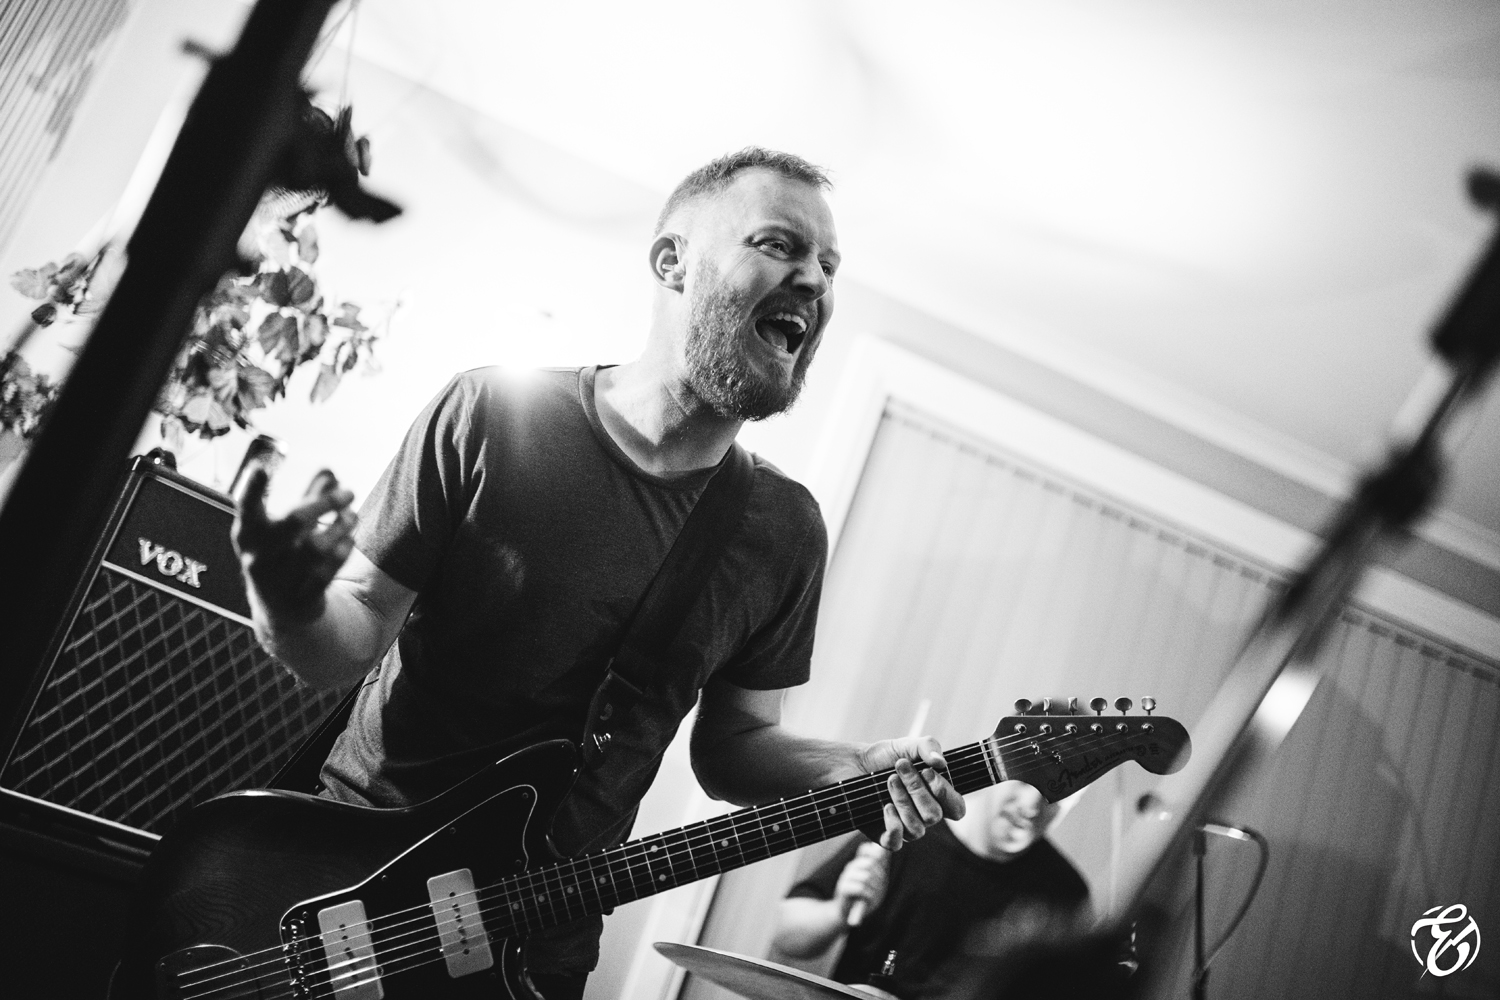 Marcus Wynwood performing with Captives at a house party during the filming of the Locked out of Heaven music video. Photo by Andrew Basso at Electrum Photography